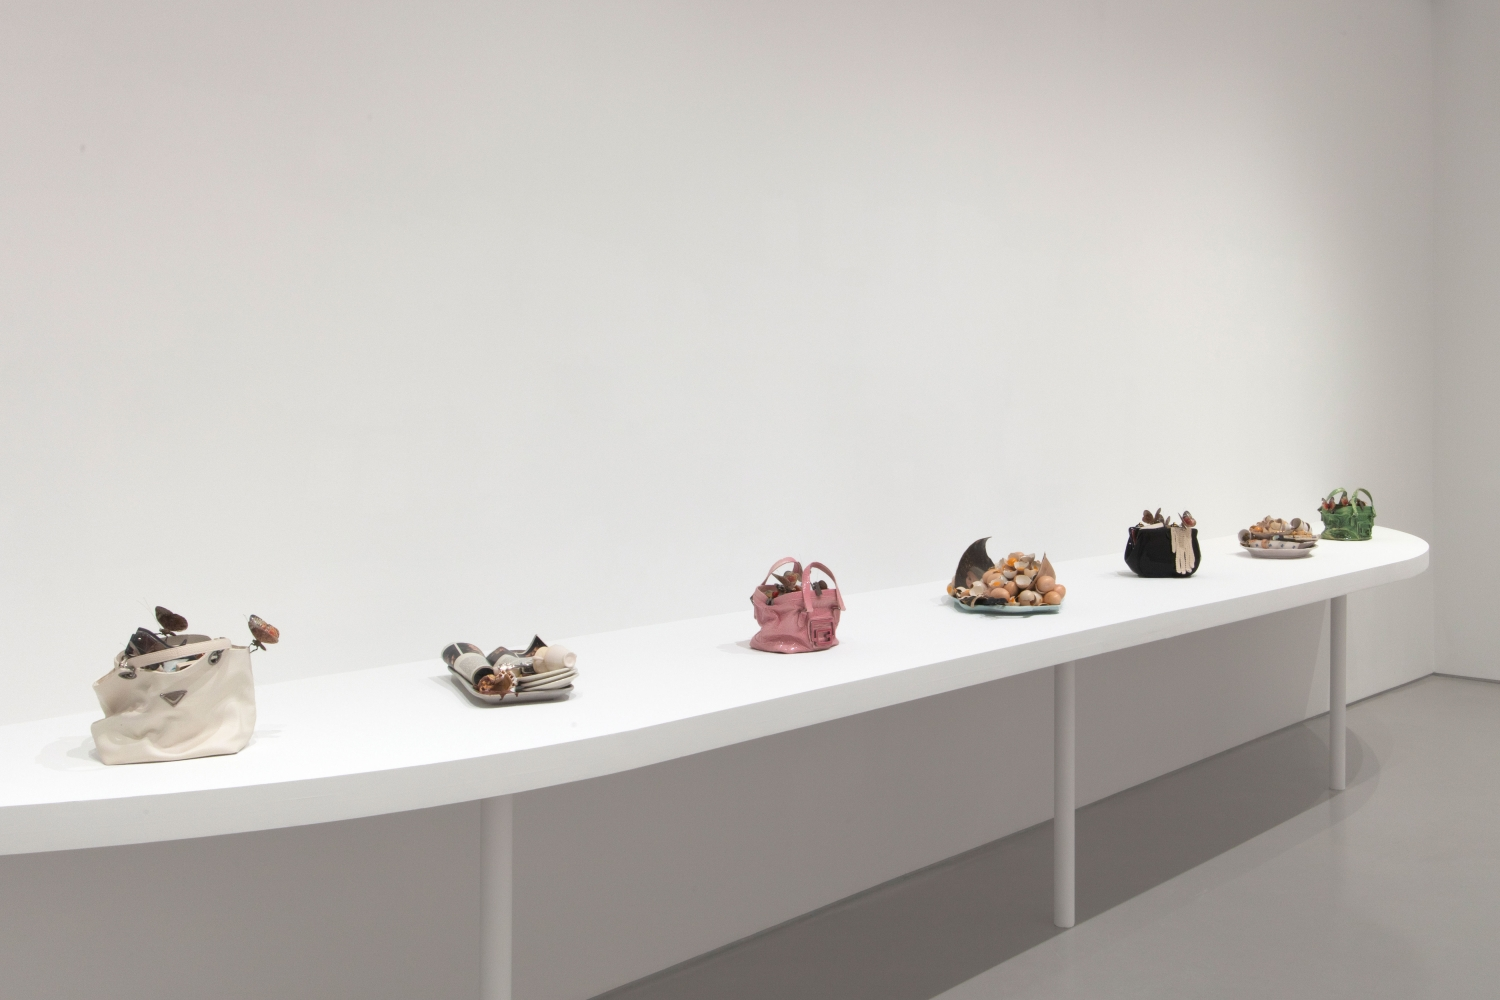 a white shelf holds seven sculptures resembling designer handbags and food trays